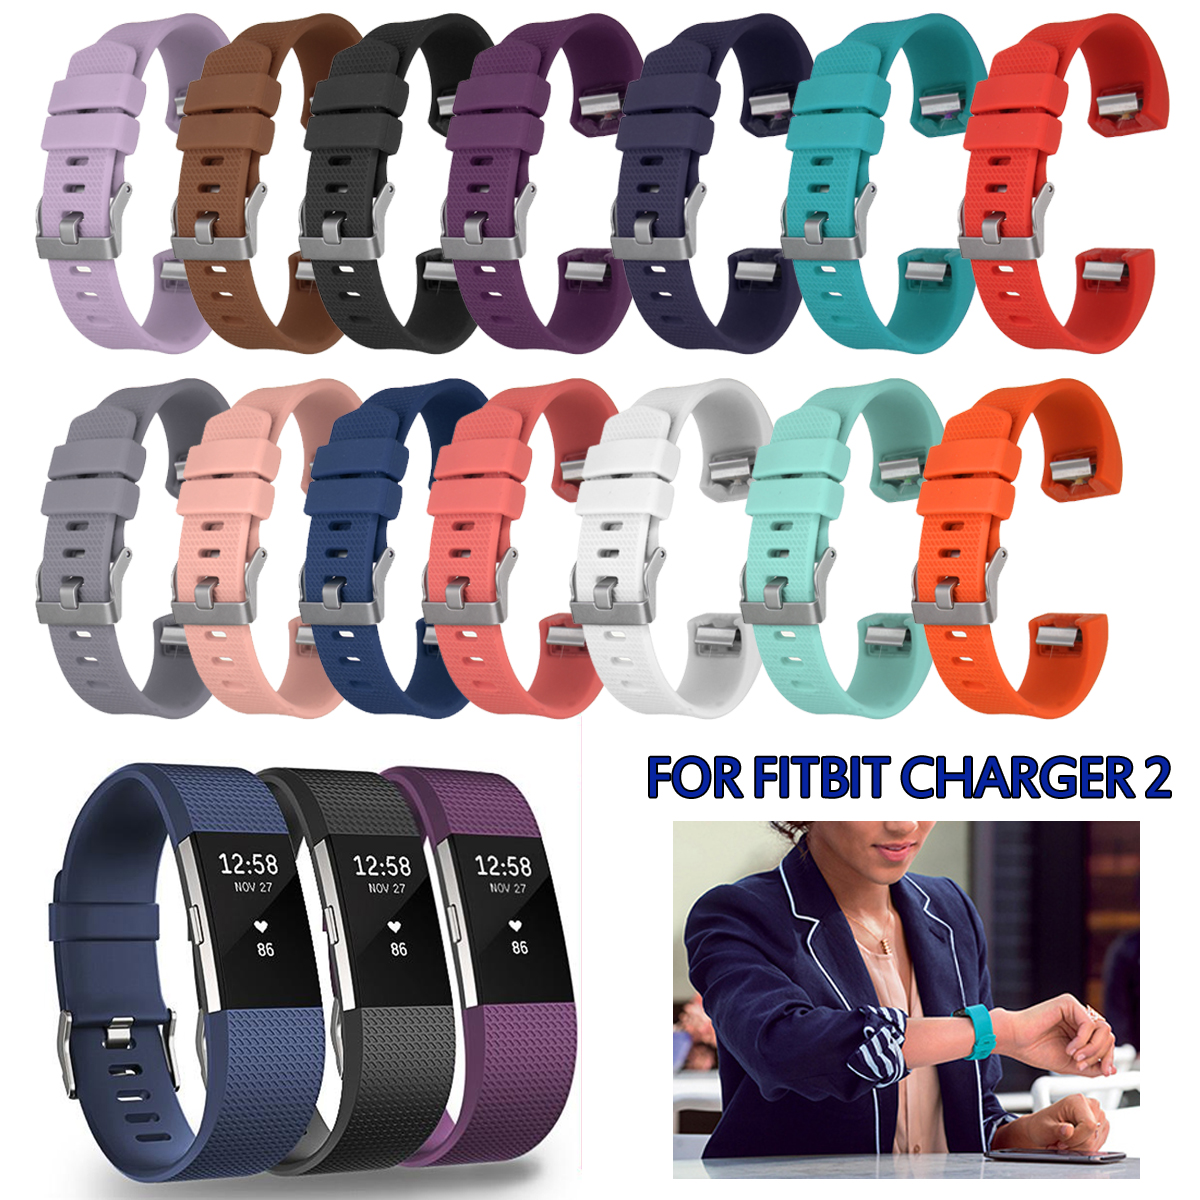 Large Size Silicone Smart Heart Rate Bracelet Replacement Strap for Fitbit Charge 2